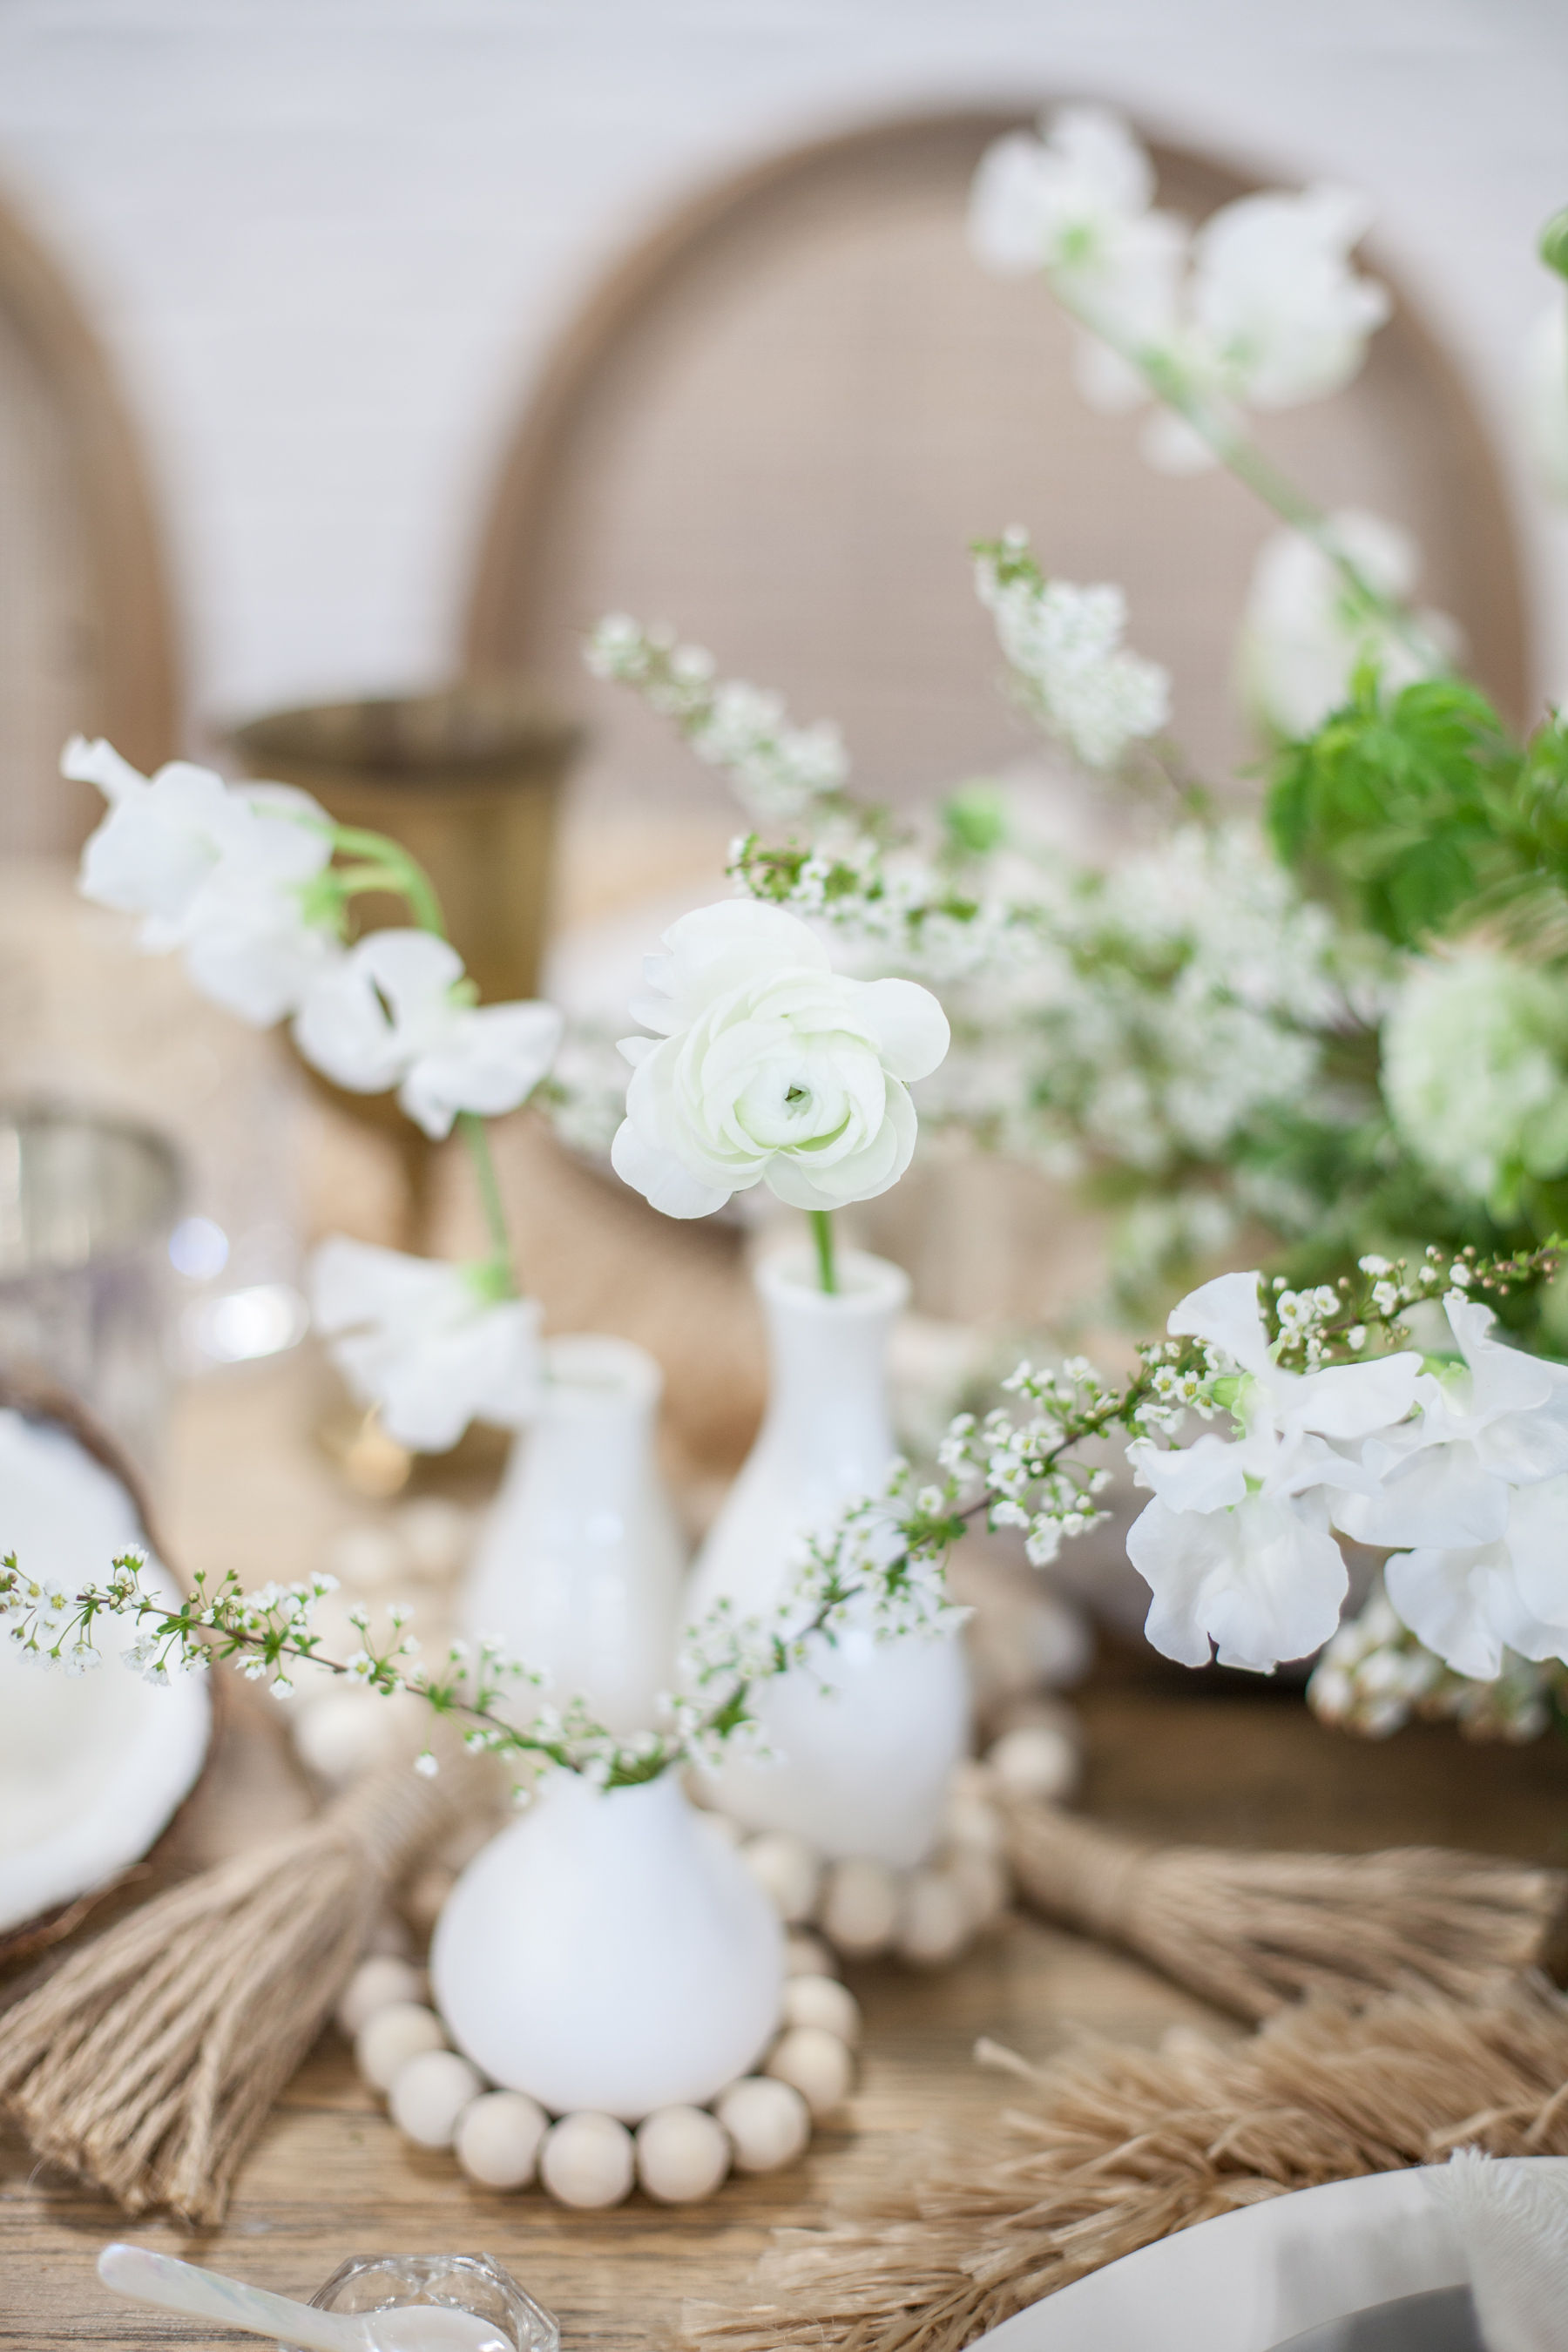 White bud vases with minimal white flowers